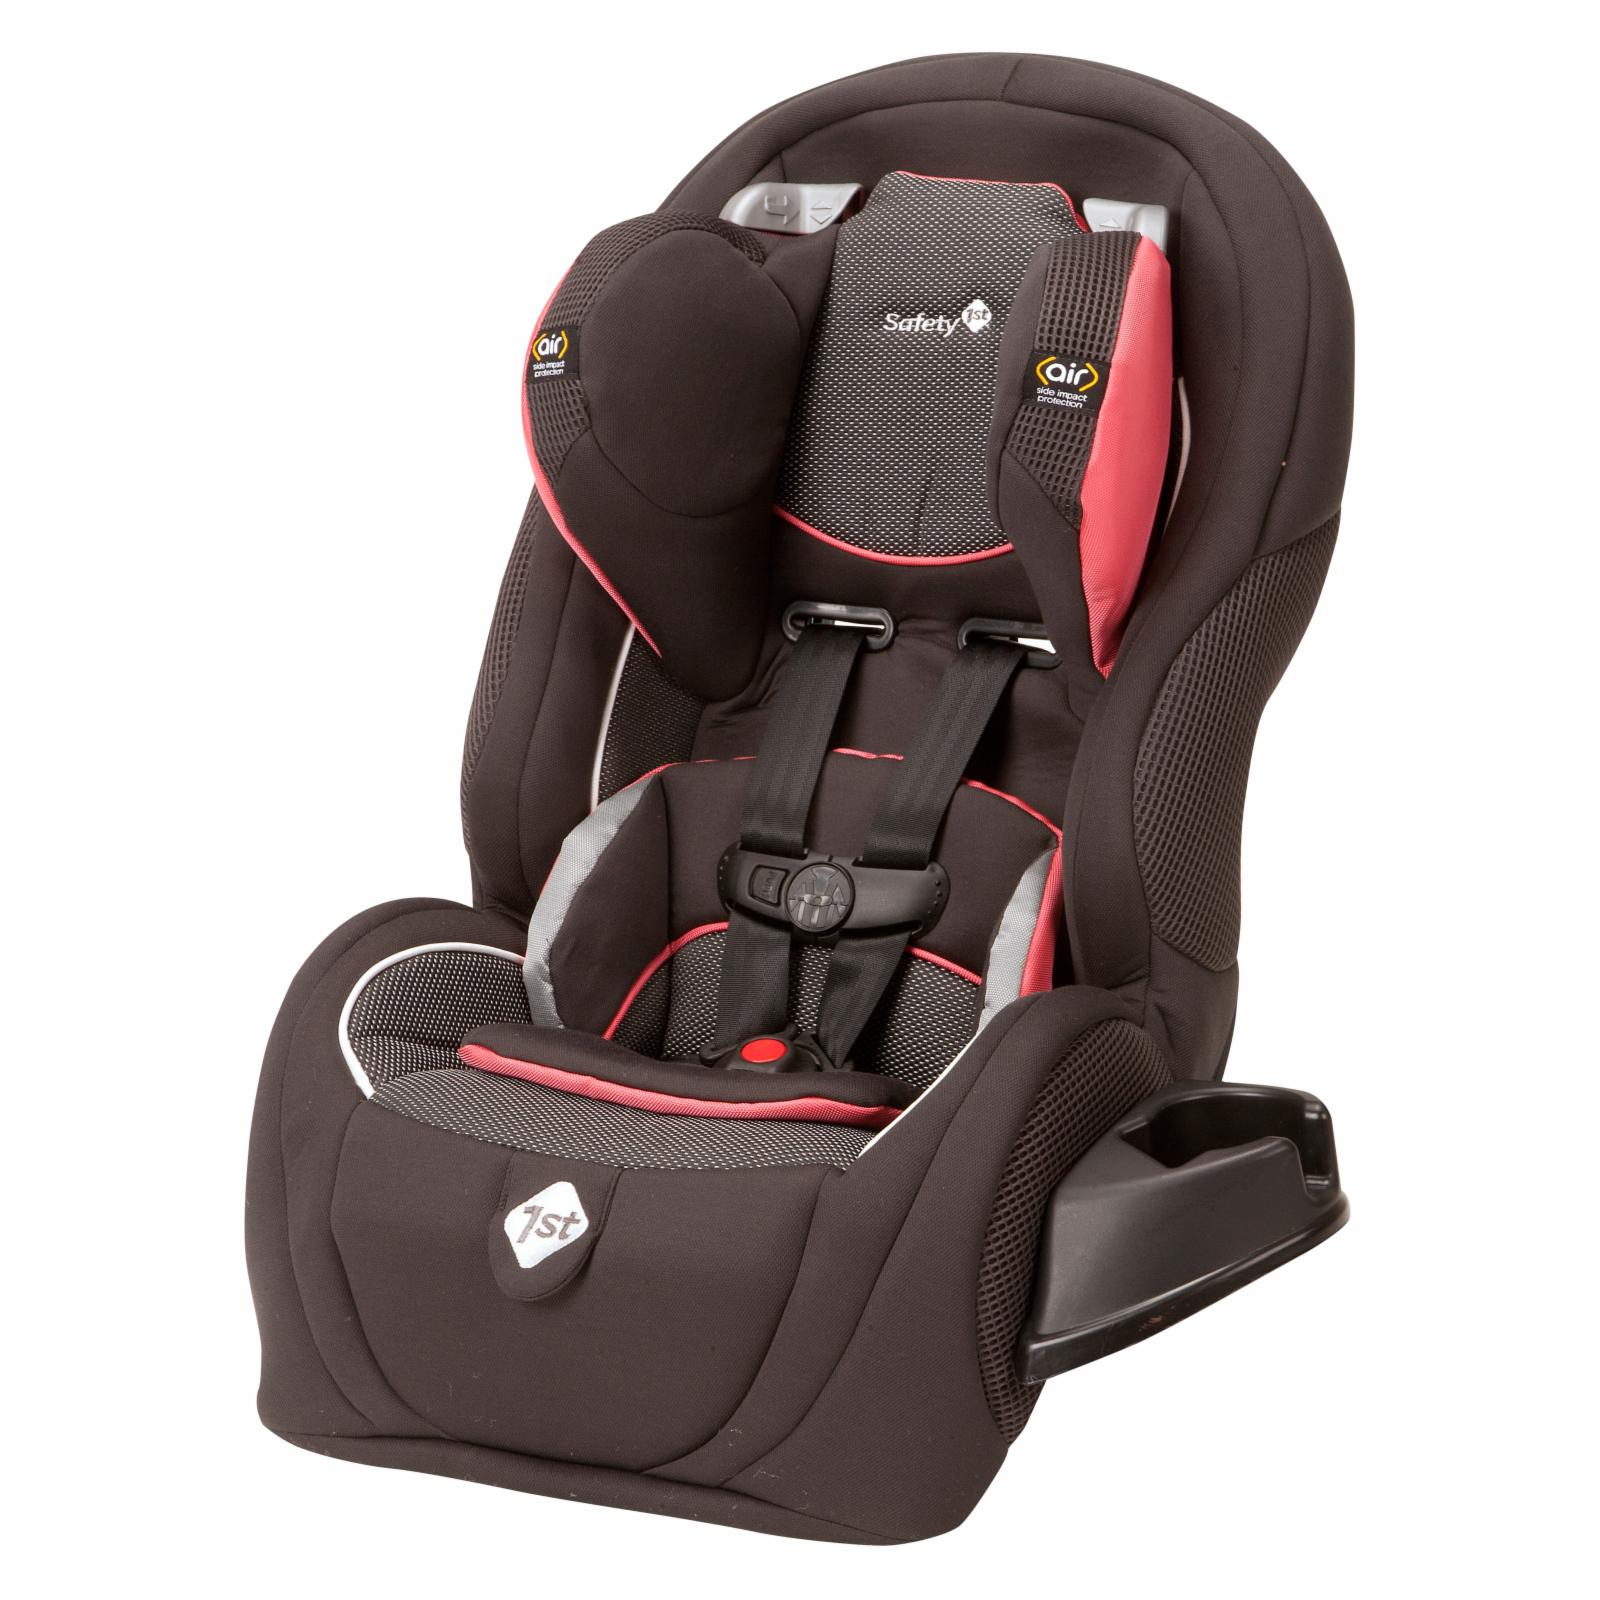 Safety 1st Complete Air 65 Convertible Car Seat Corabelle...